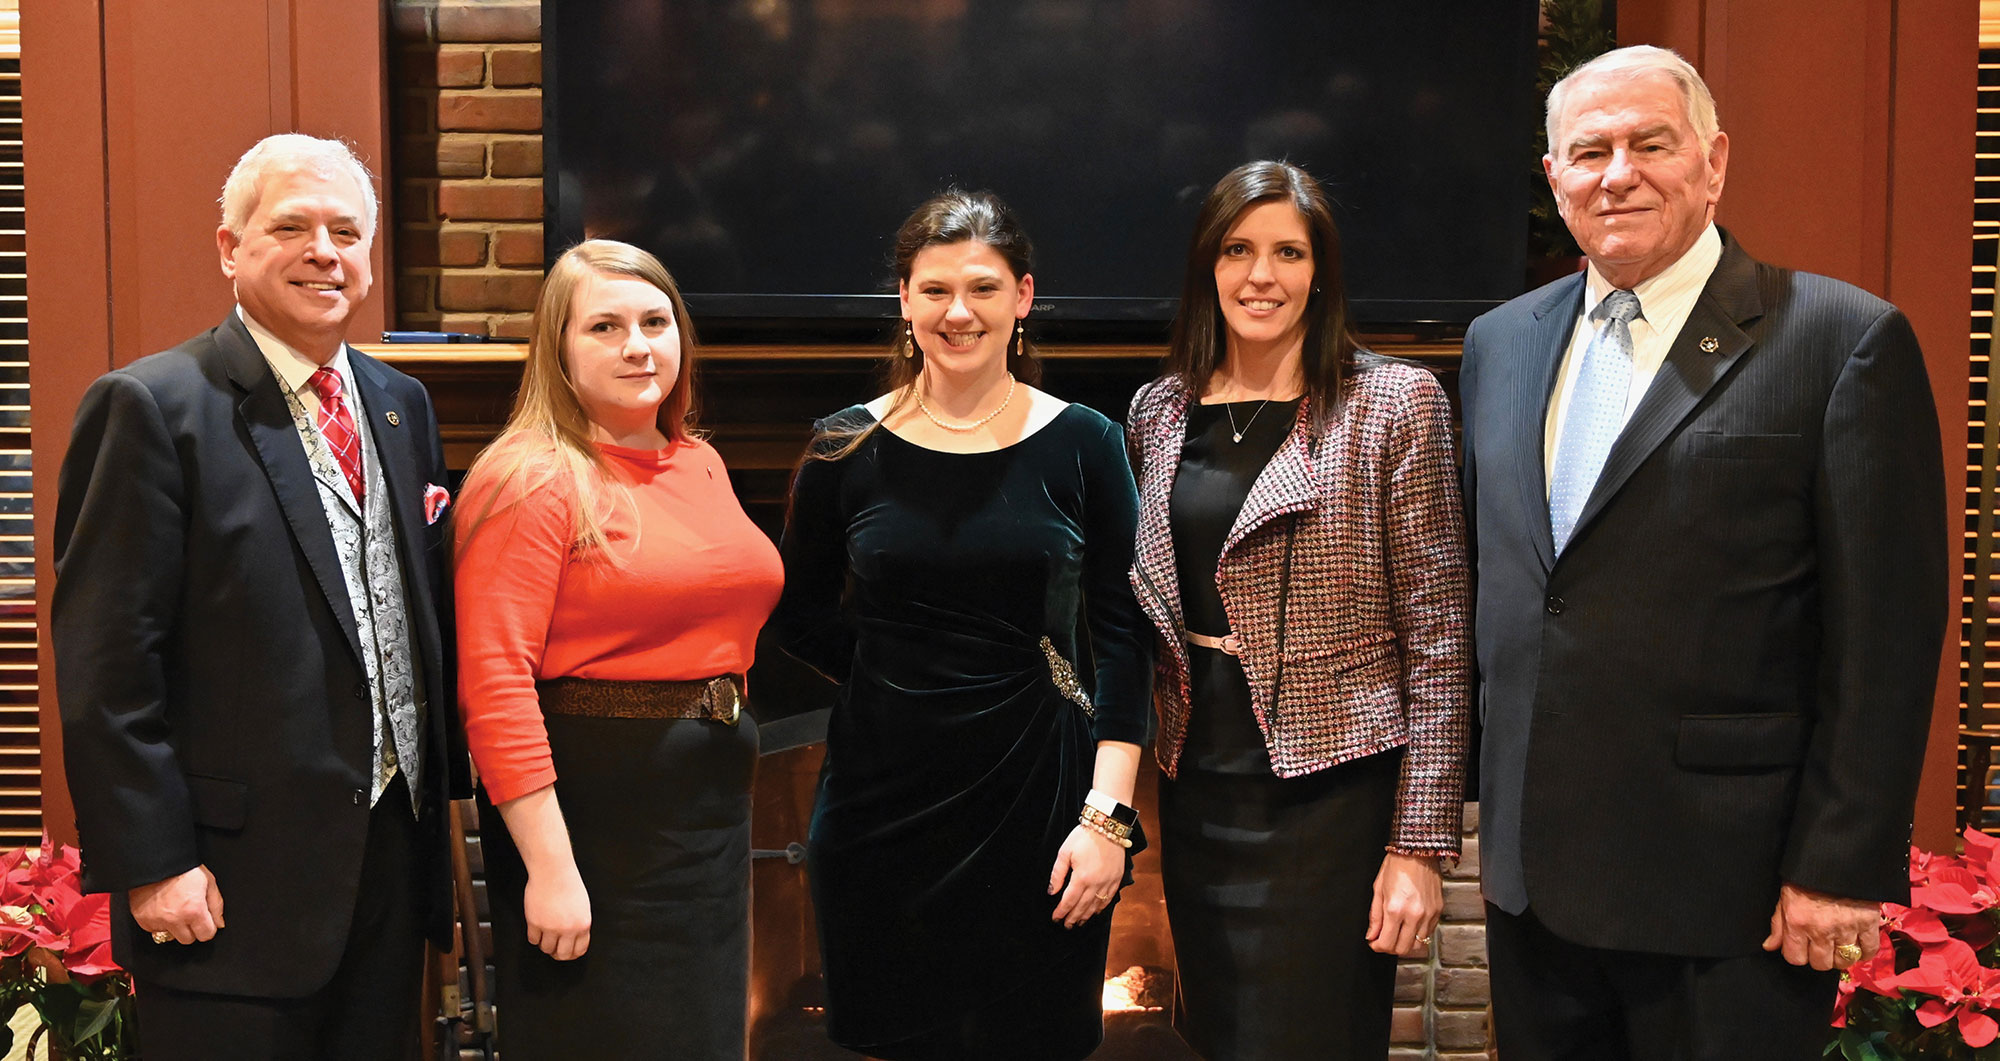 Happy Holidays from the CGSC Foundation staff (L-R): President/CEO Col.(Ret.) Rod Cox; Simons Center Editor/Program Assistant Elizabeth Ditsch; Assistant Operations Officer Paige Cox; Director of Operations Lora Morgan; Chief Development Officer Col. (Ret.) Bob Ulin.